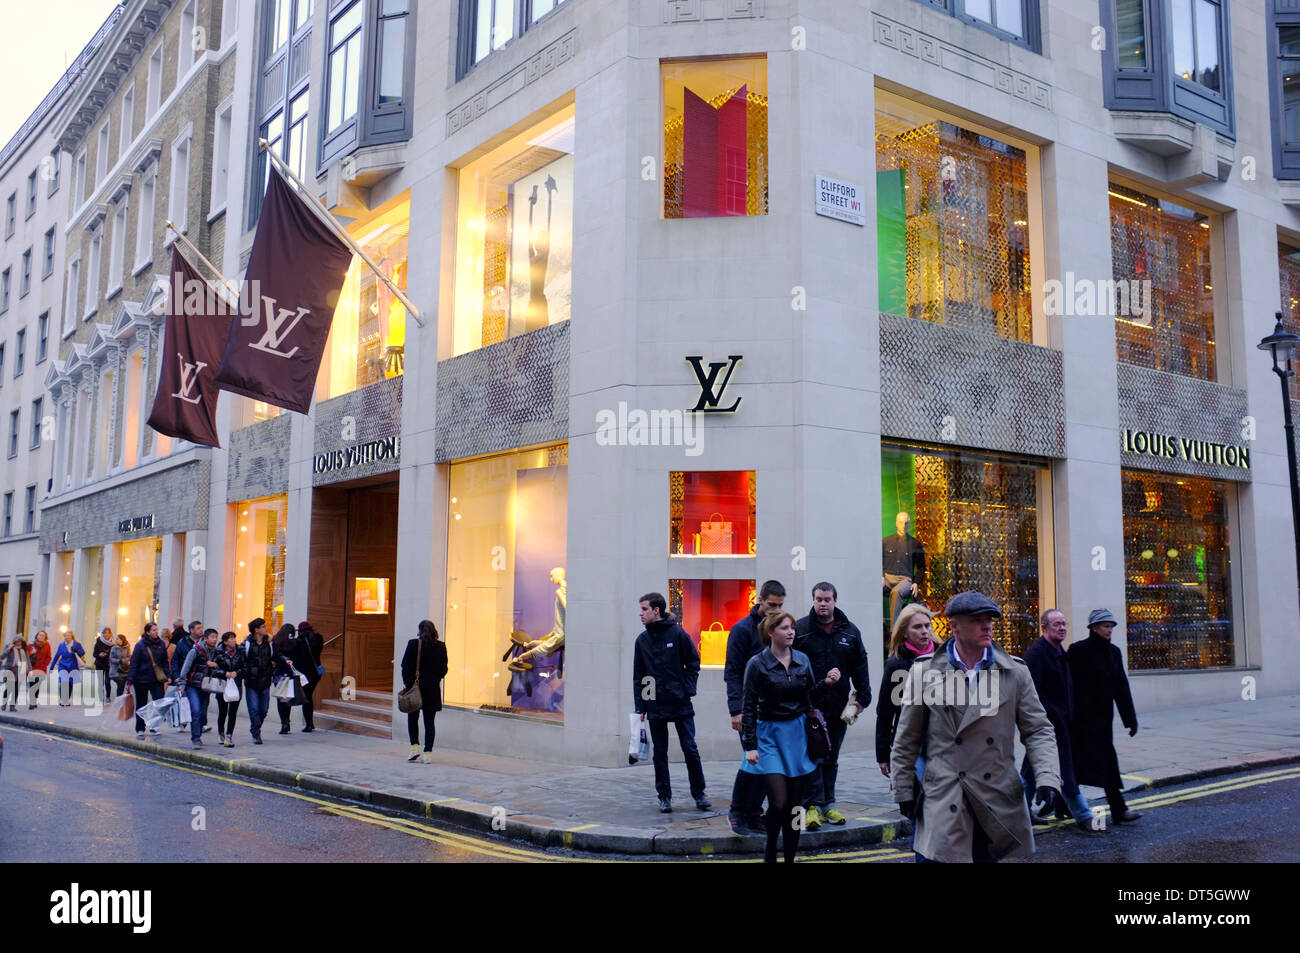 2017 fashion royalty - Louis Vuitton On Corner Of Bond Street Amp Clifford Street